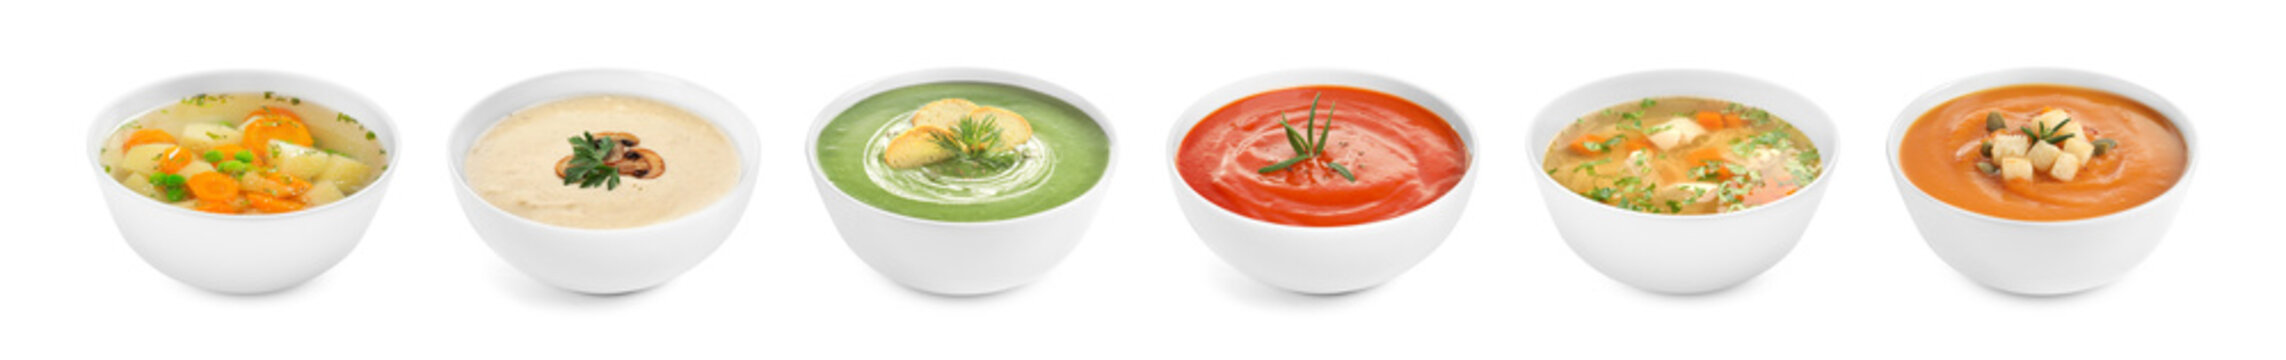 Set of different fresh homemade soups on white background. Banner design